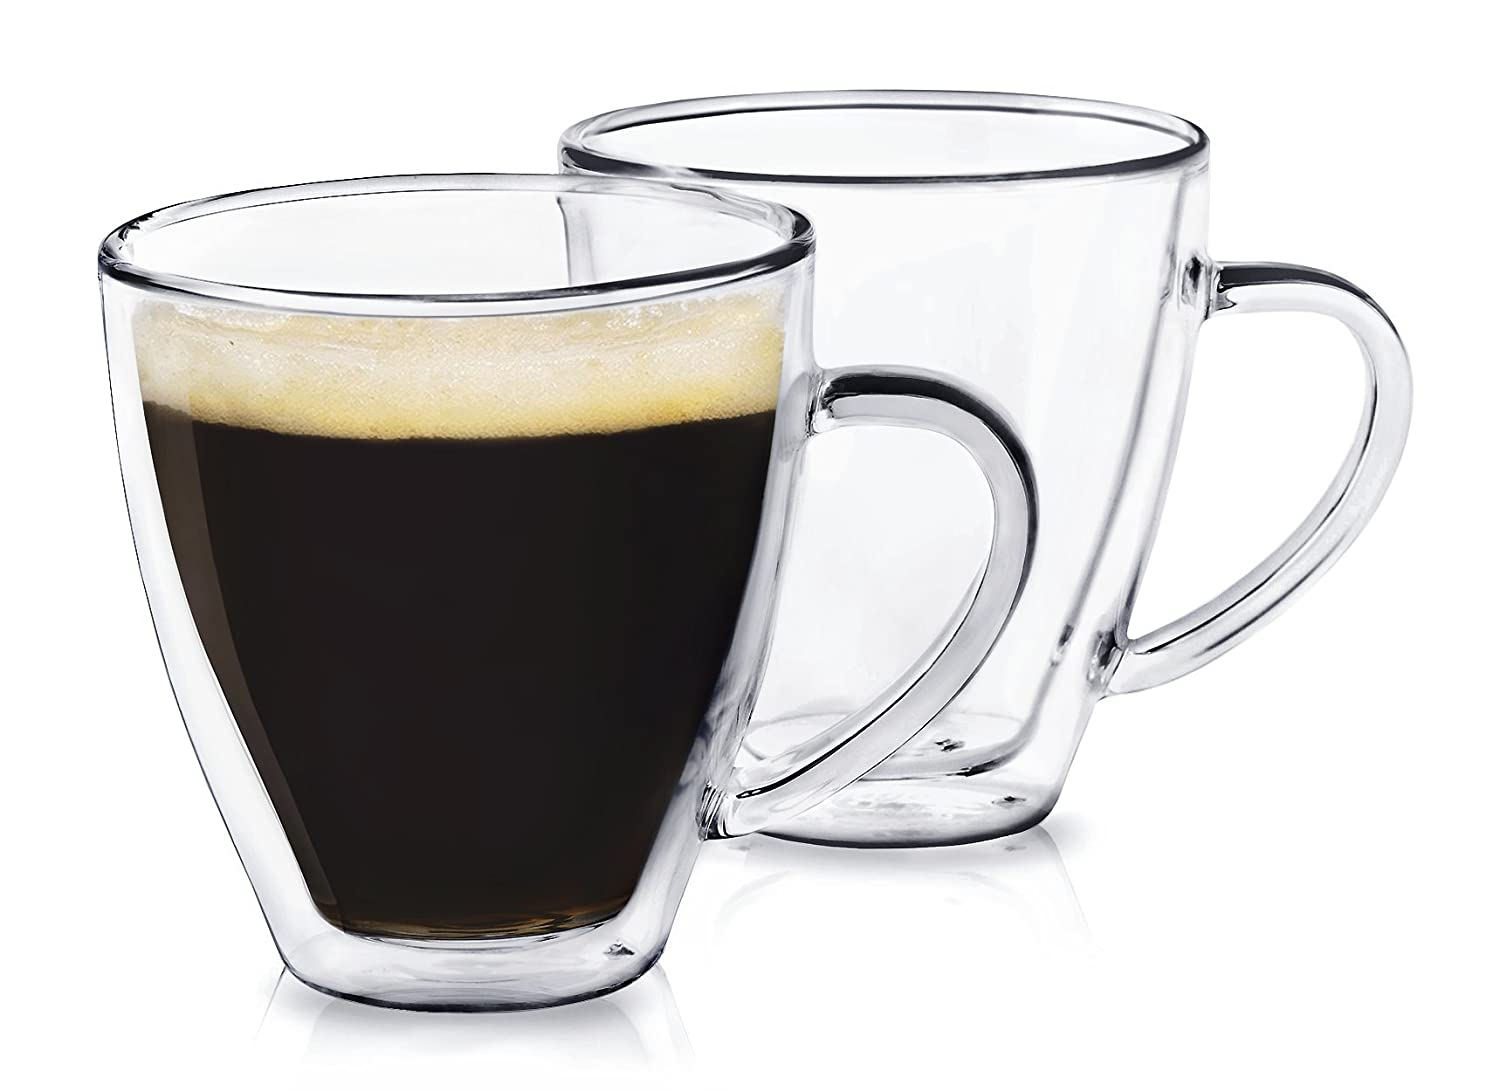 Dragon Glassware Espresso Cups, 6-Ounce Double Wall Insulated Glasses, Gift Boxed - Set of 2 DGW3